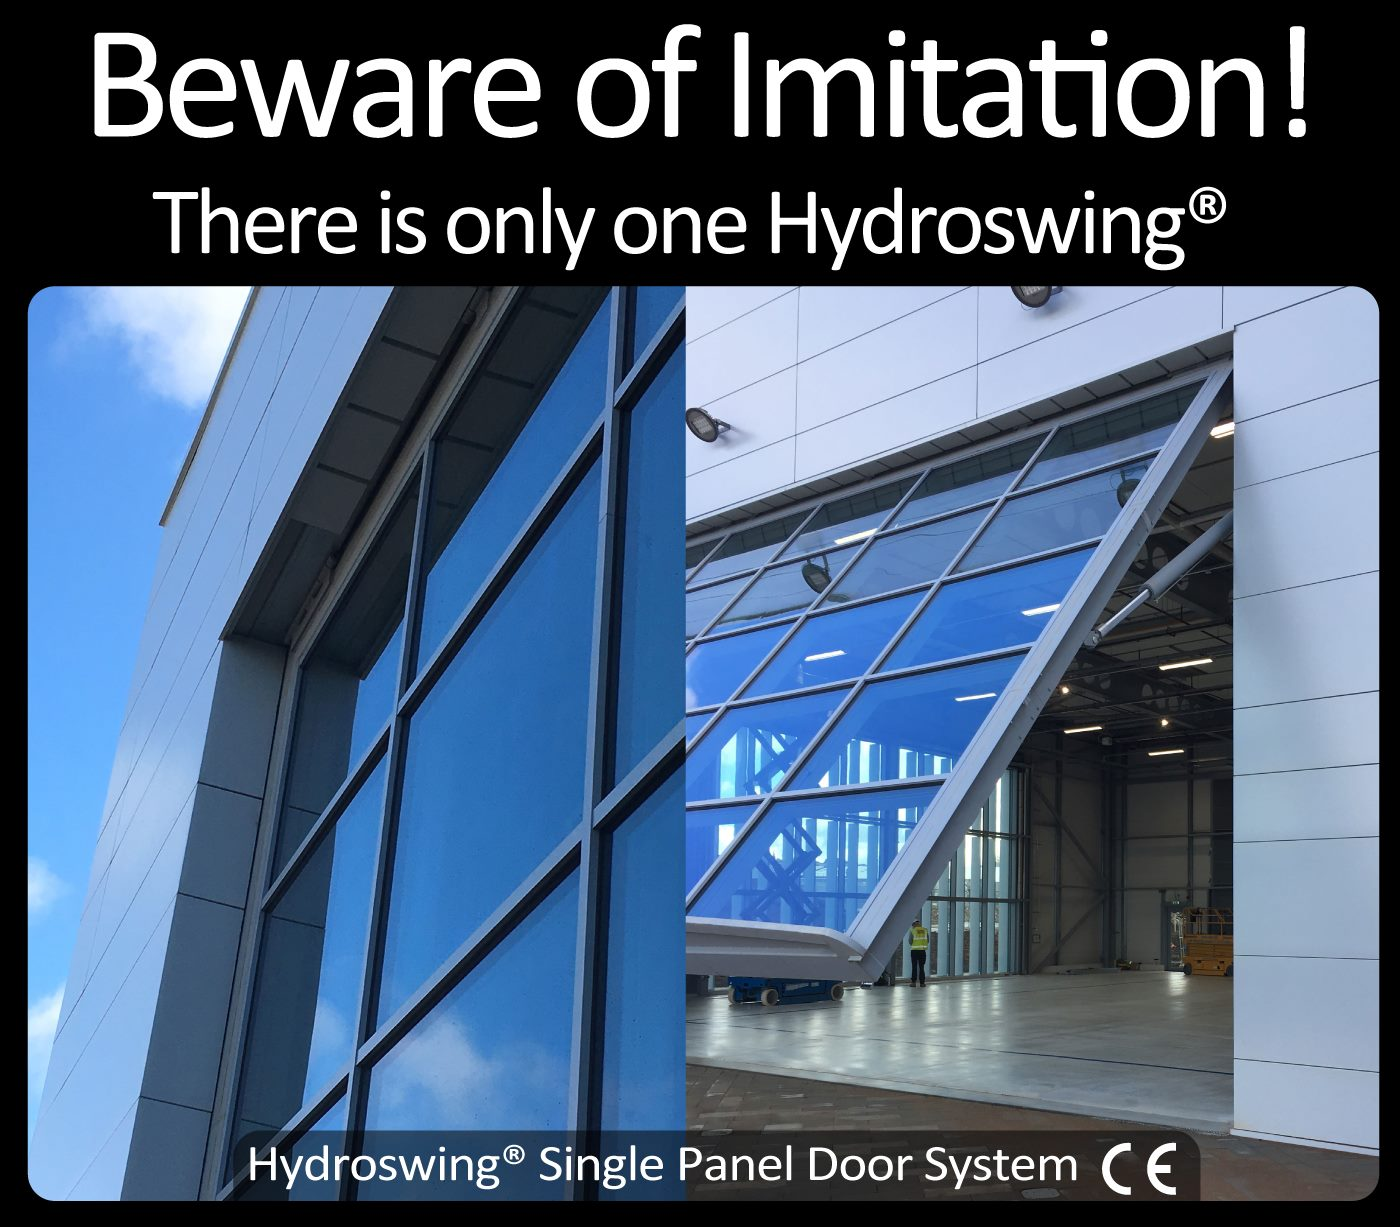 beware of imitation there is only one hydroswing hydraulic door